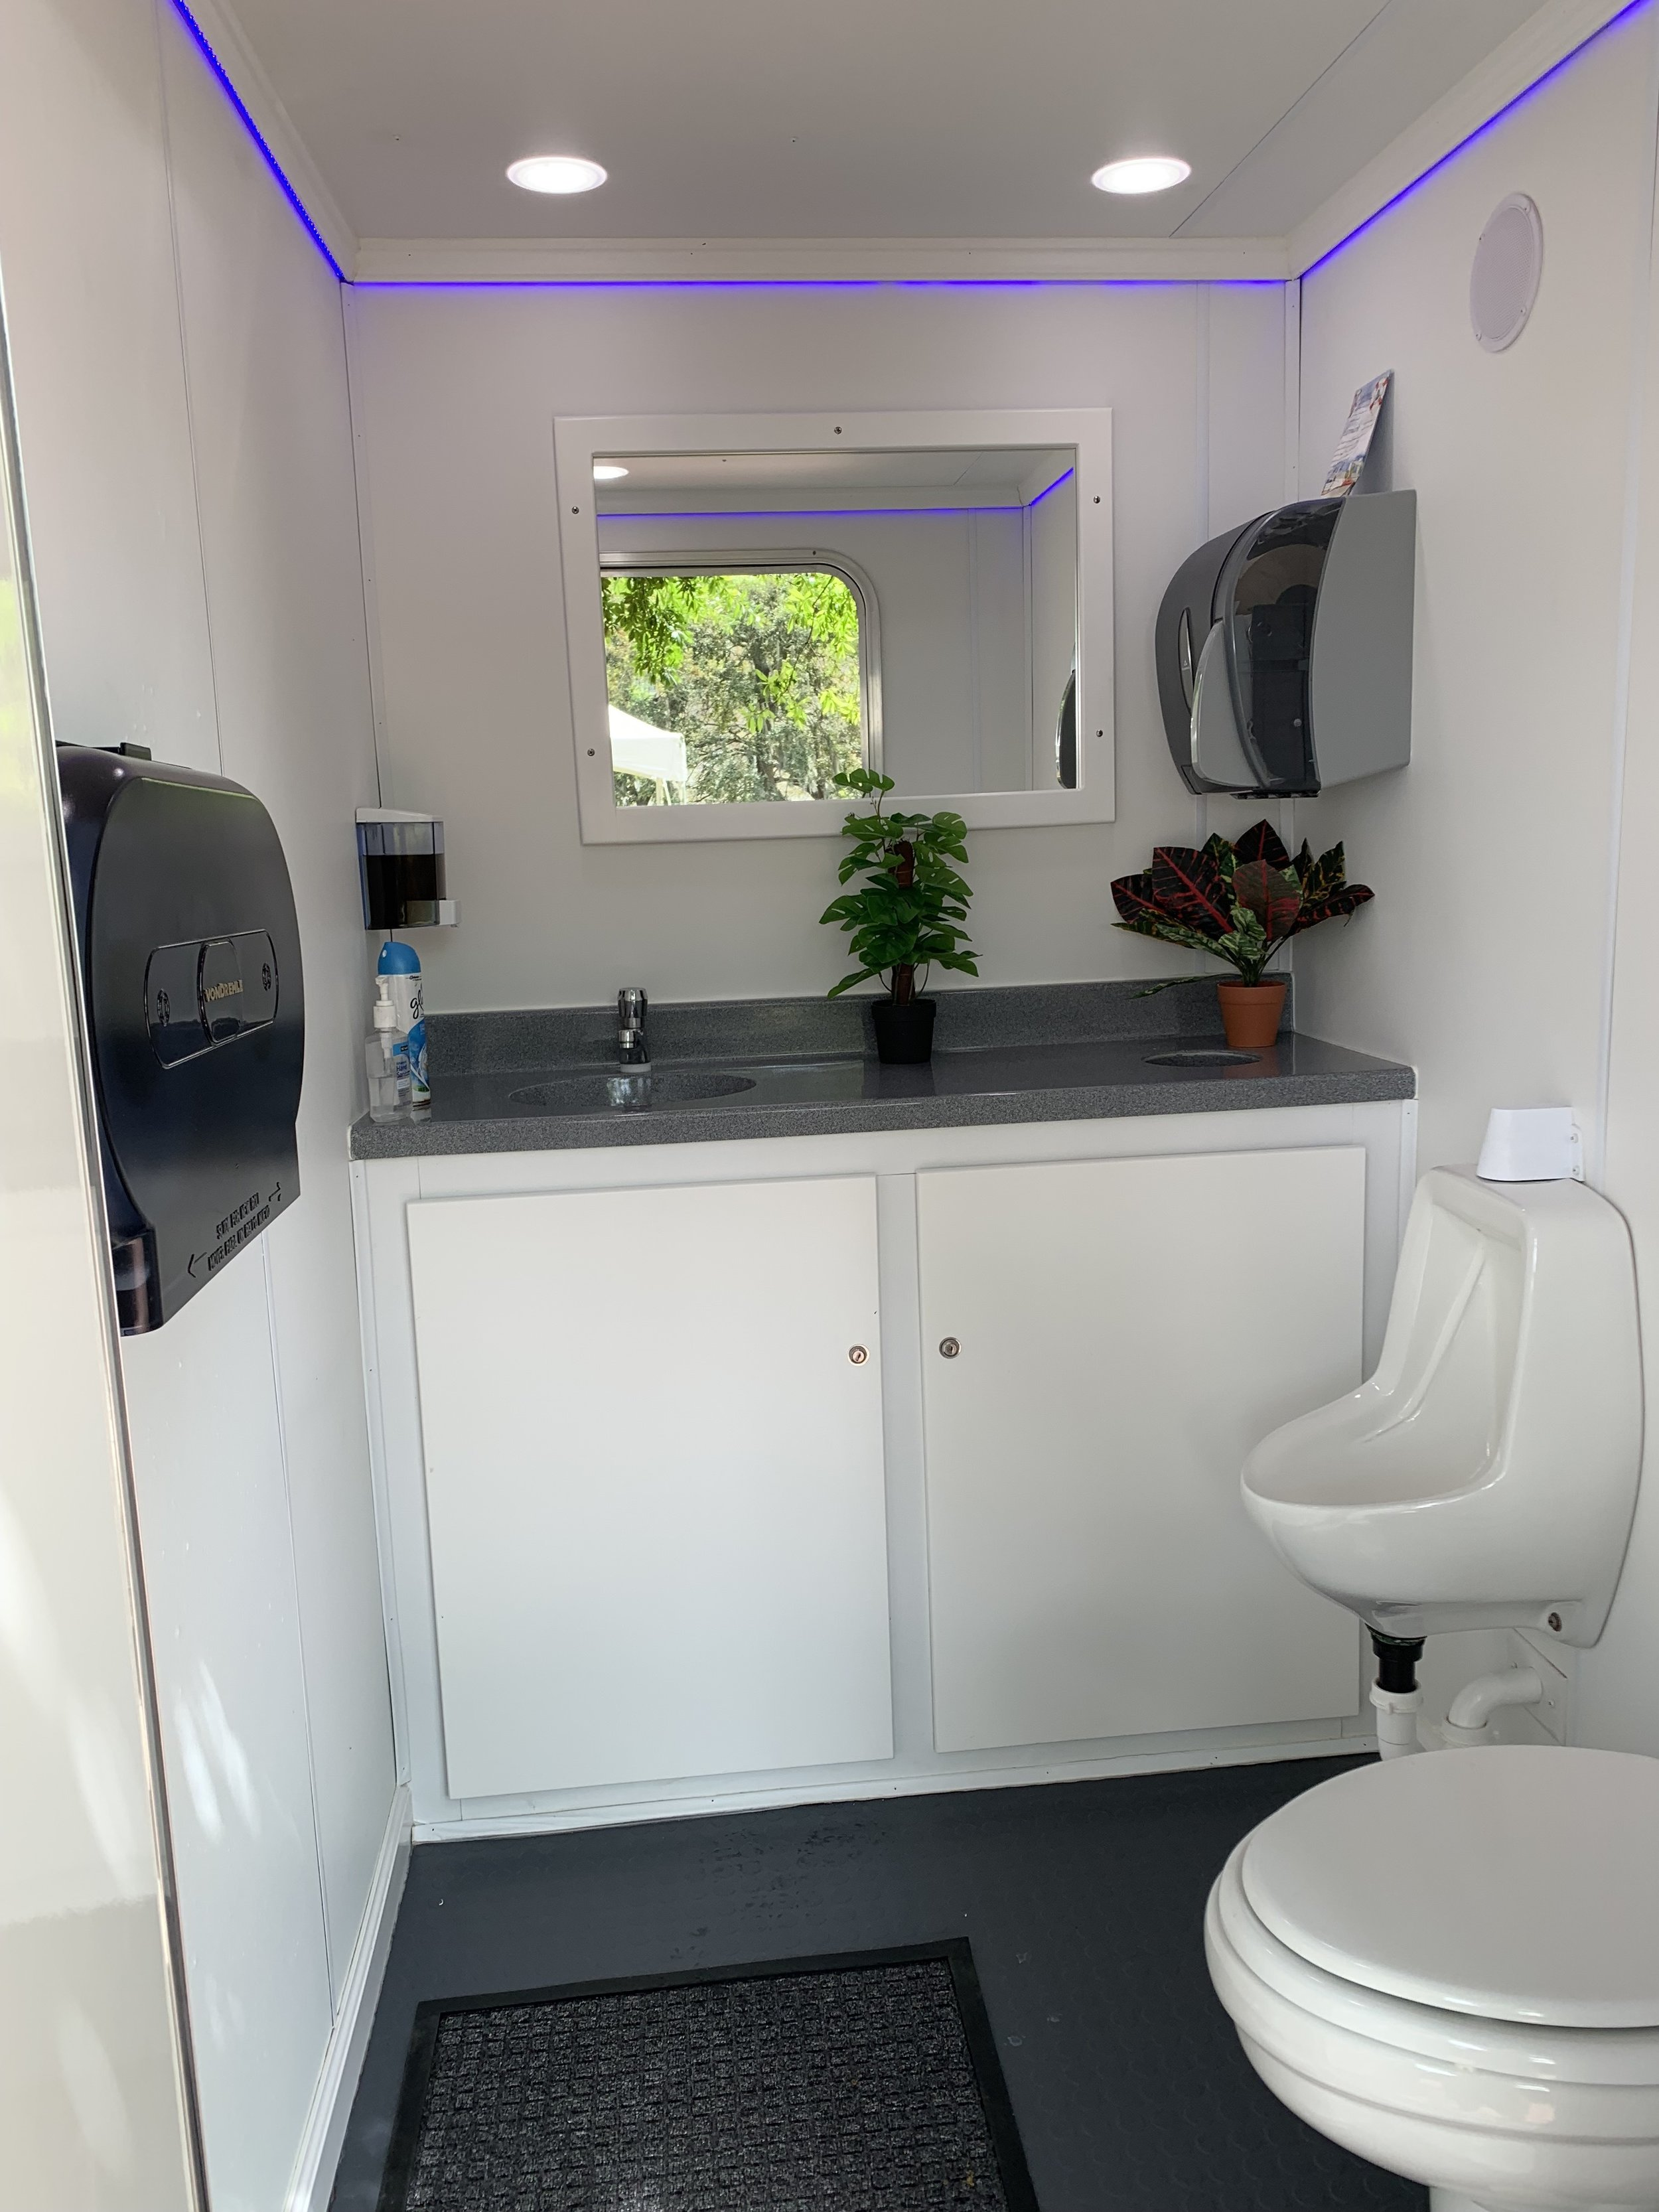 Our Restrooms - Our 16ft restroom trailers contain 3 separate restrooms (2 ladies room's and one men's room). Each is equipped with air conditioning, heat, radio, sink, soap dispenser, paper towels, trash receptacles, and porcelain toilet/urinal. These restrooms are well lit with LED lighting inside and out.